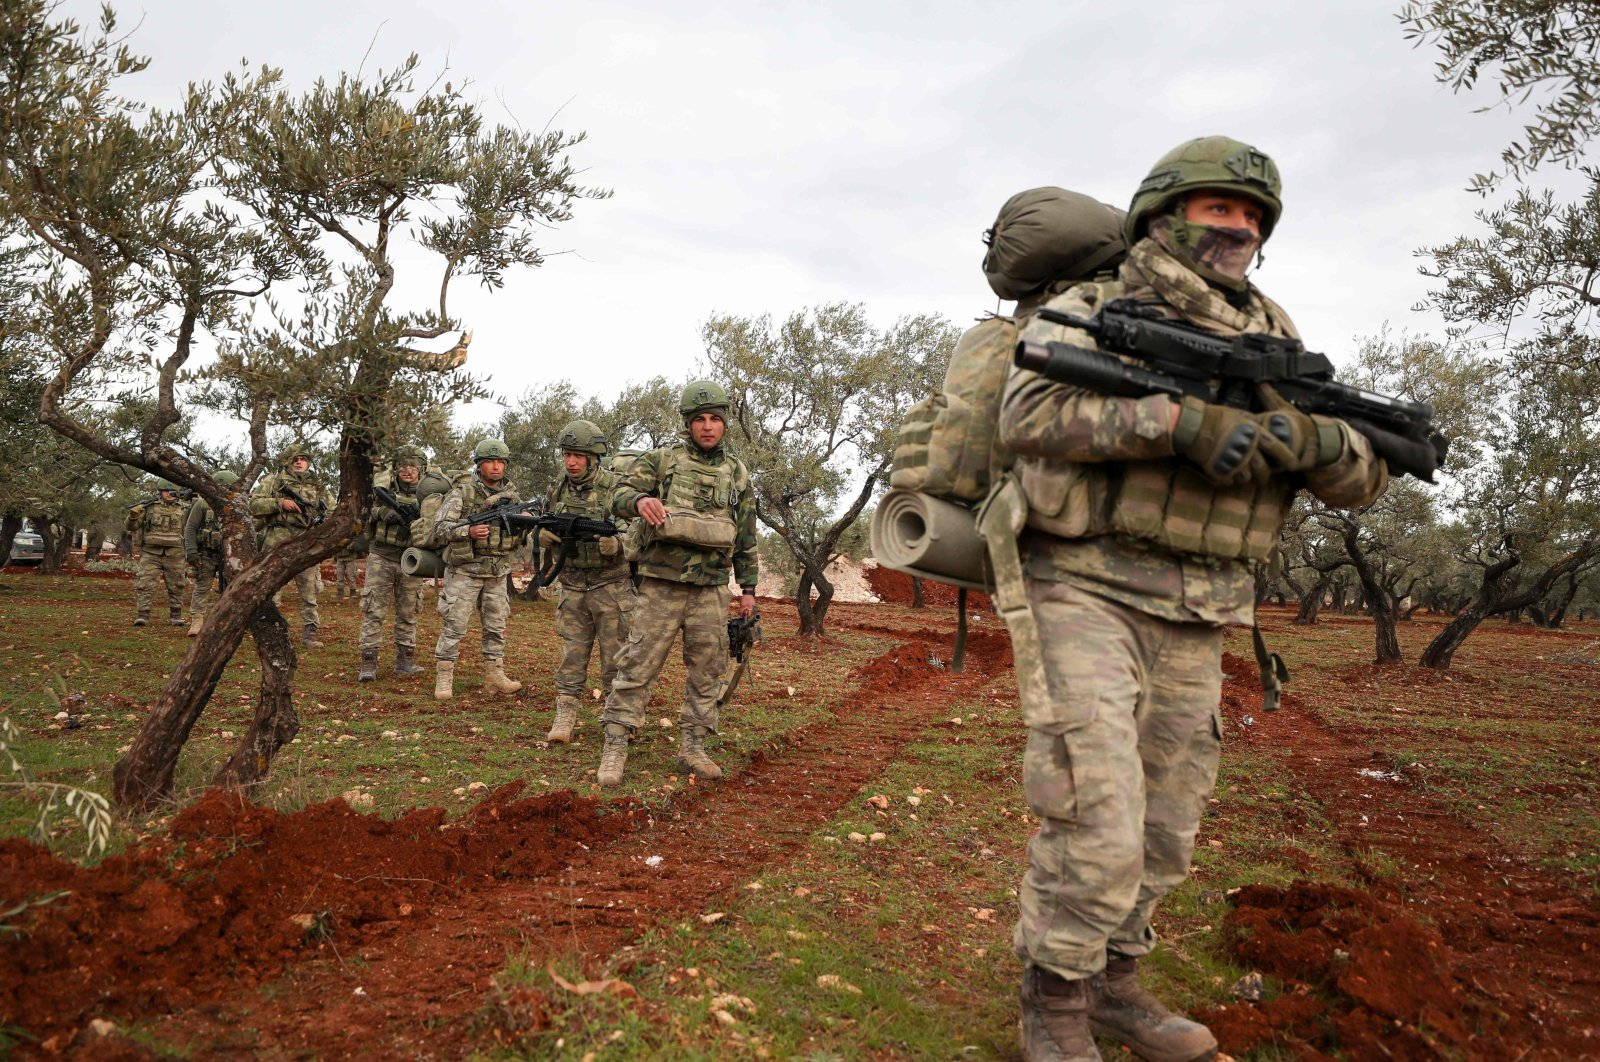 Turkish soldiers gather in the village of Qaminas, about 6 kilometers (3.7 miles) southeast of Idlib city in northwestern Syria, Feb. 10, 2020. (AFP Photo)